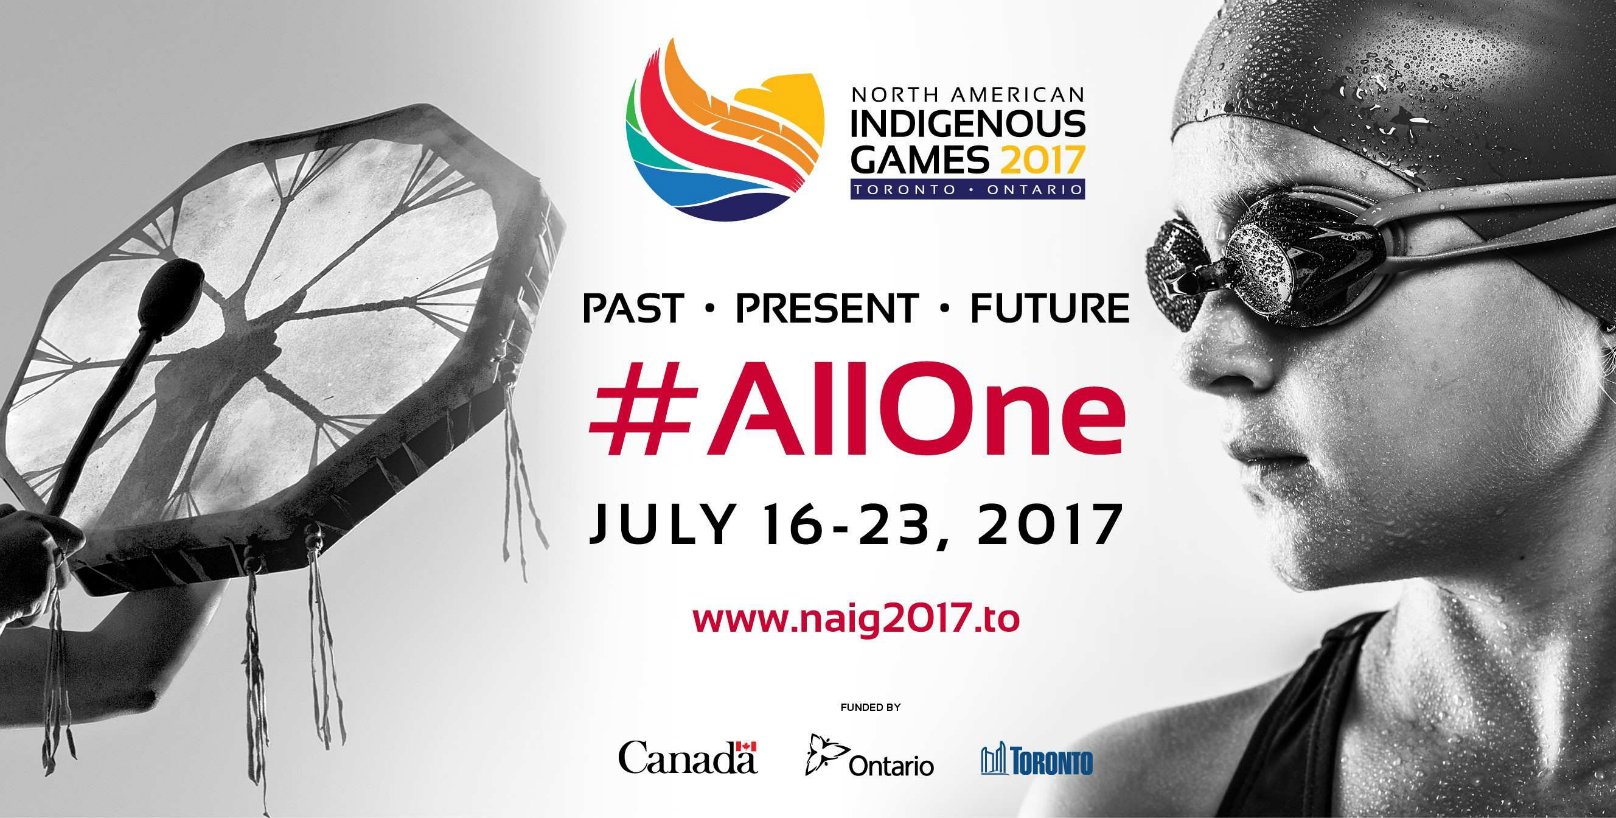 North American Indigenous Games